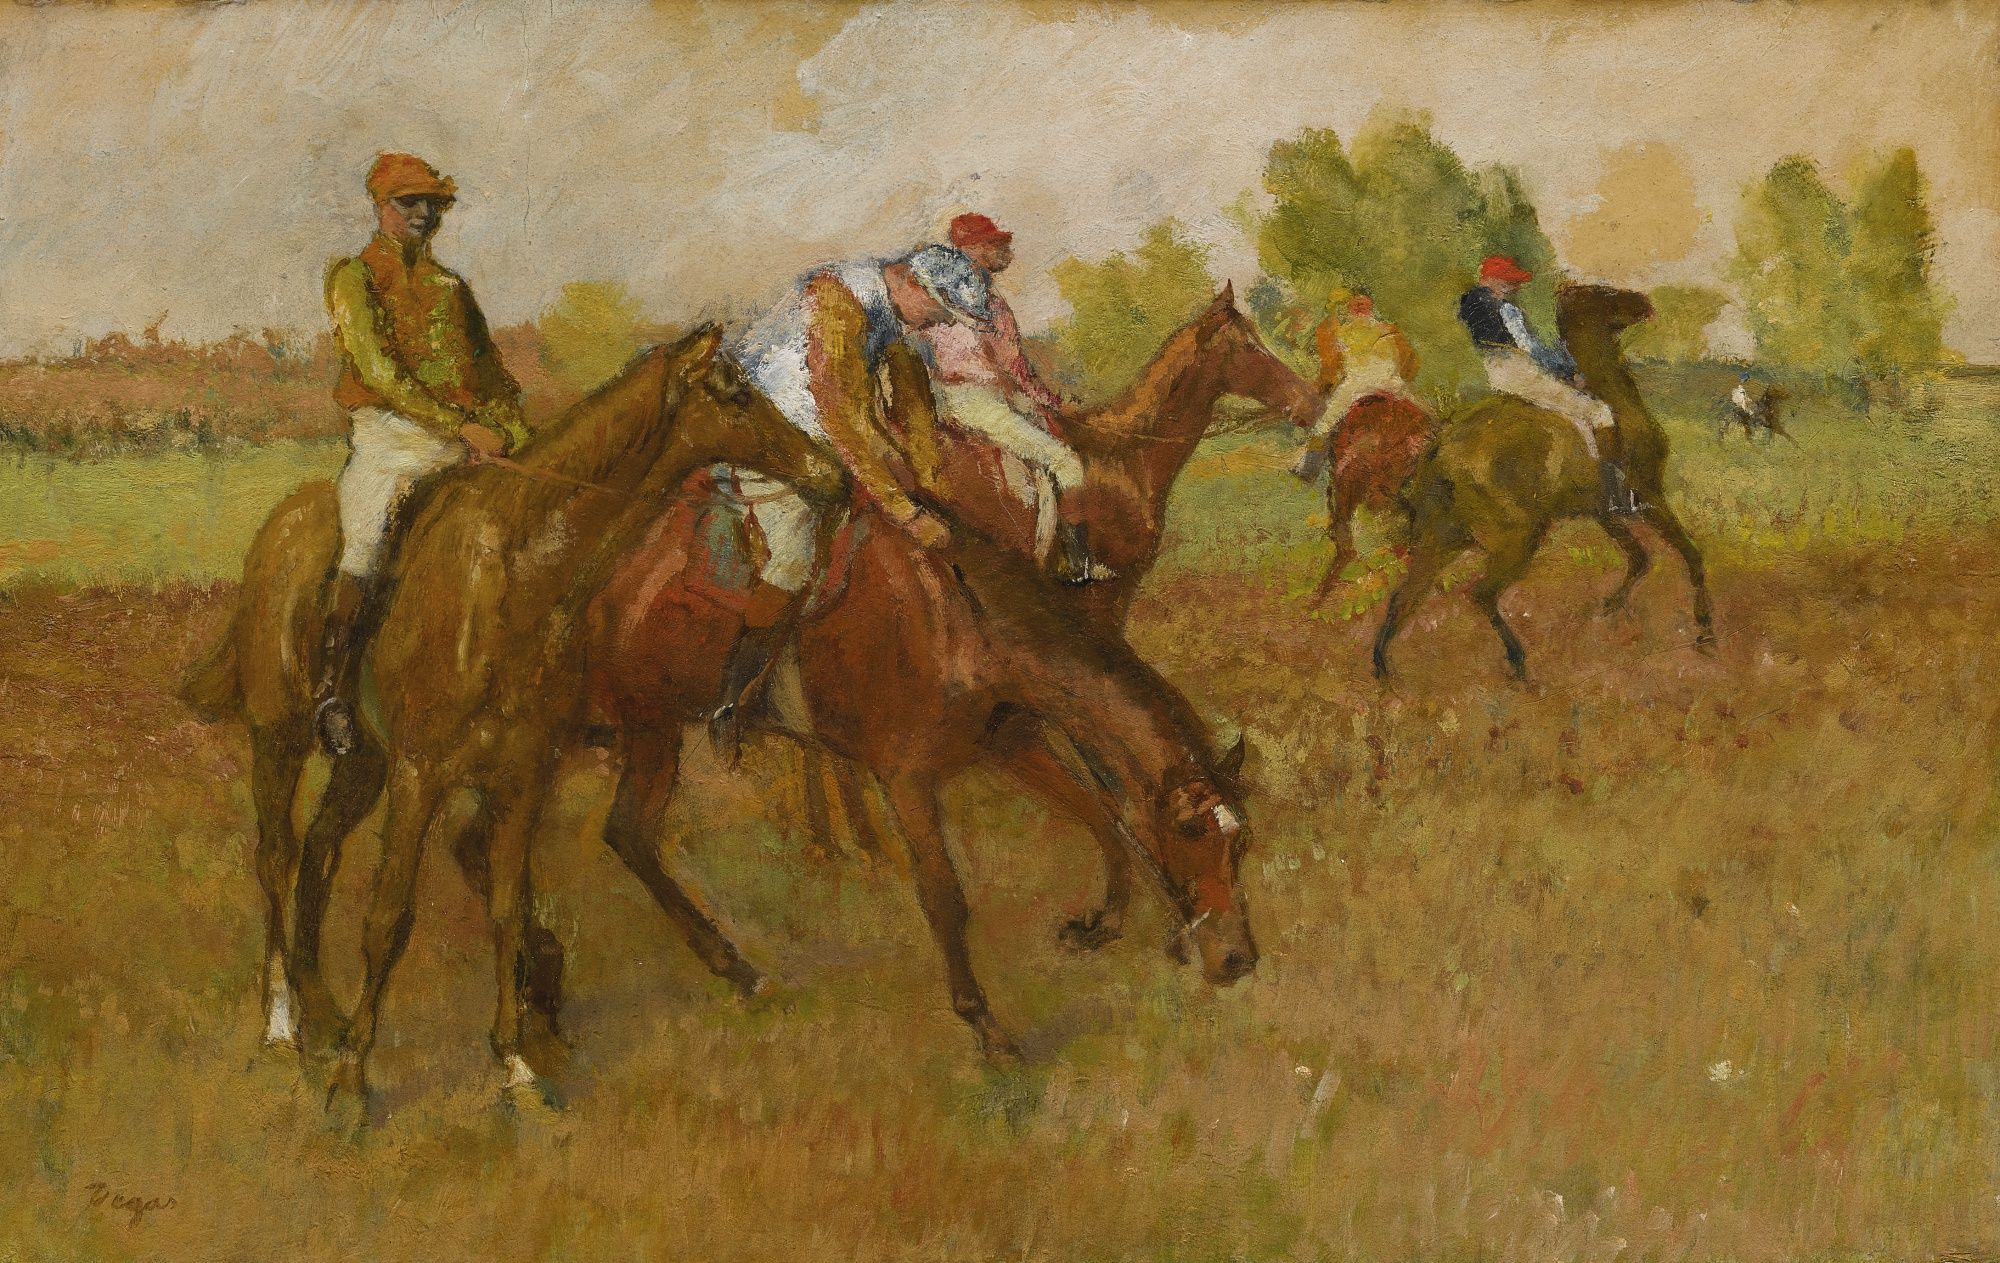 Degas Edgar Avant La Course Equestrian Sotheby S N09740lot6kjj8en Degas Paintings Edgar Degas Art Edgar Degas